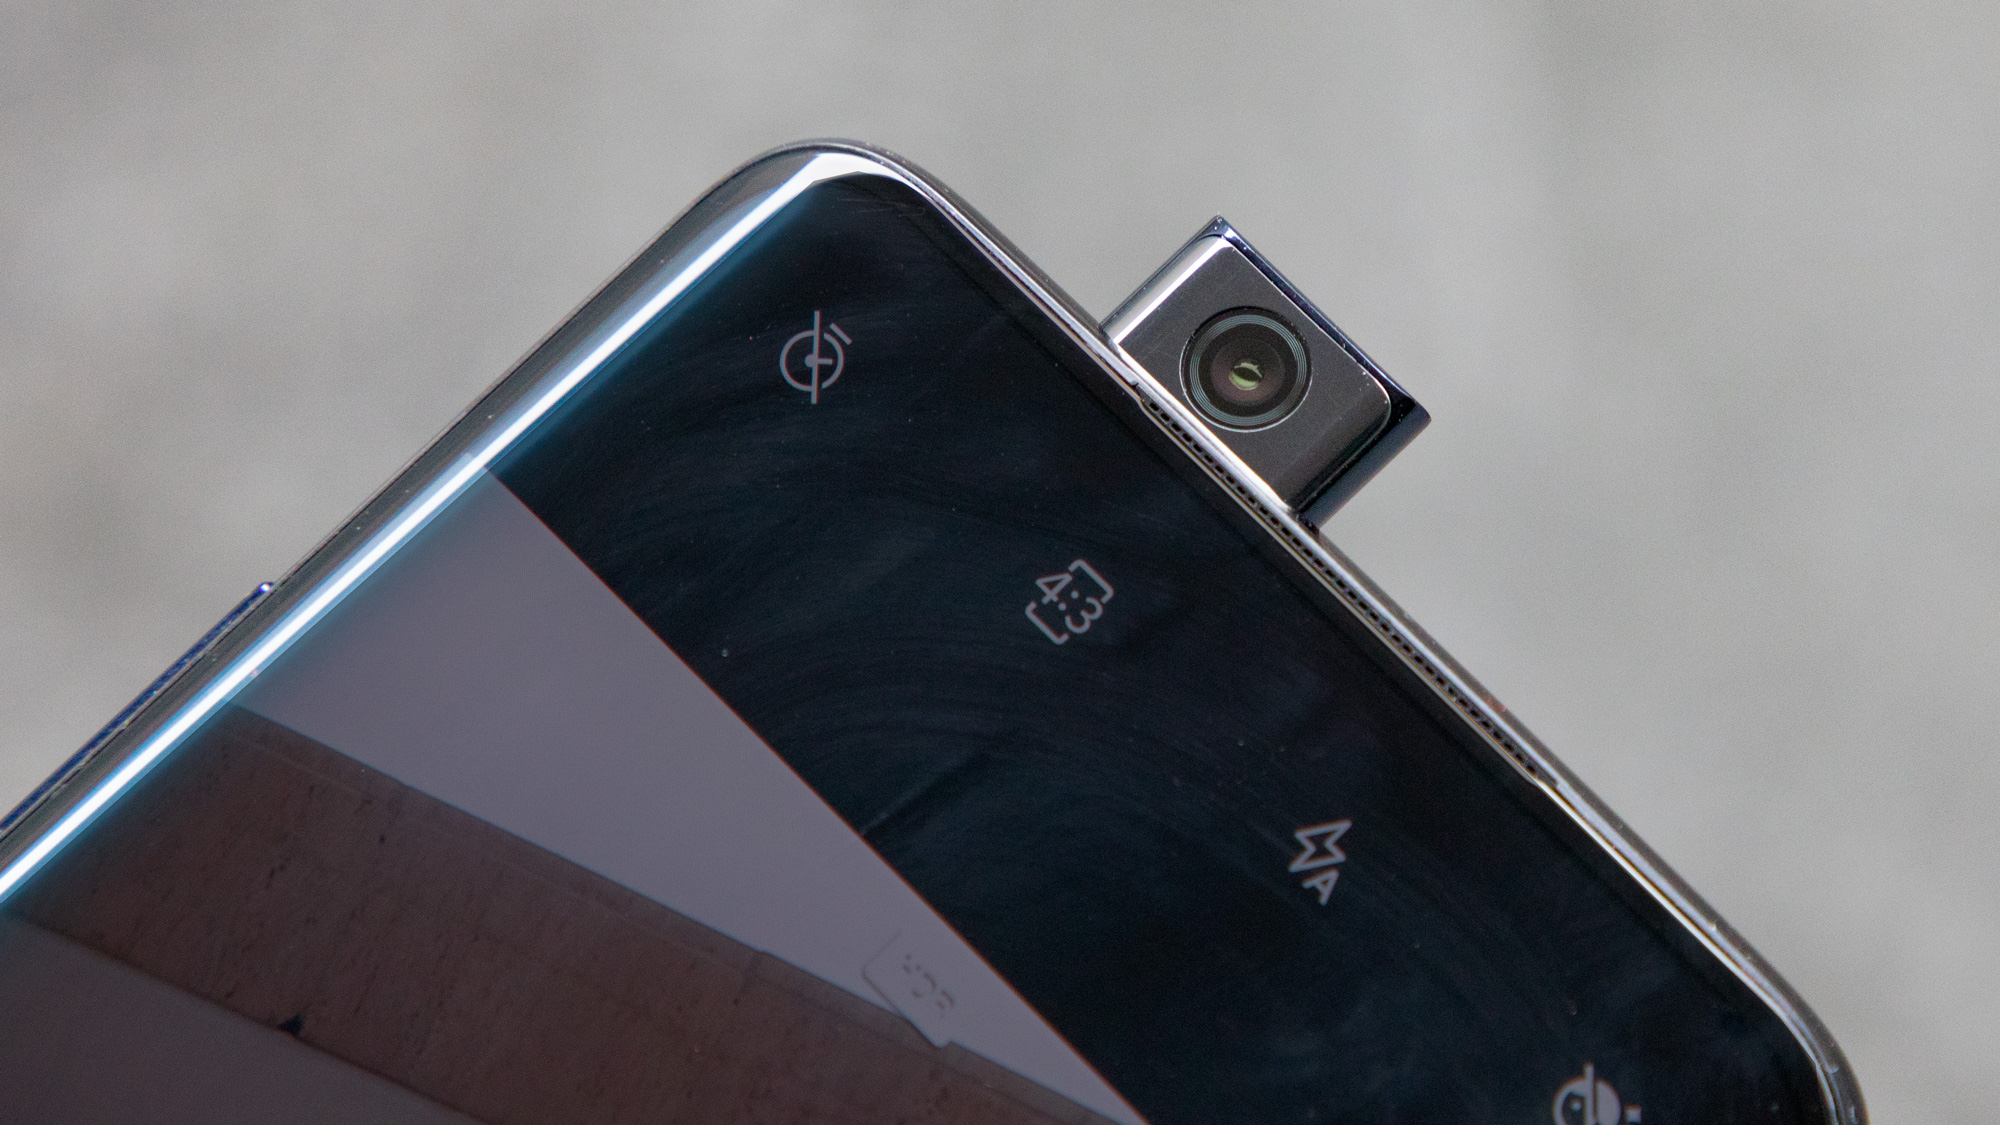 jupbgj2mL2hYyWPHWriP3N - OnePlus 7T: what we want to see